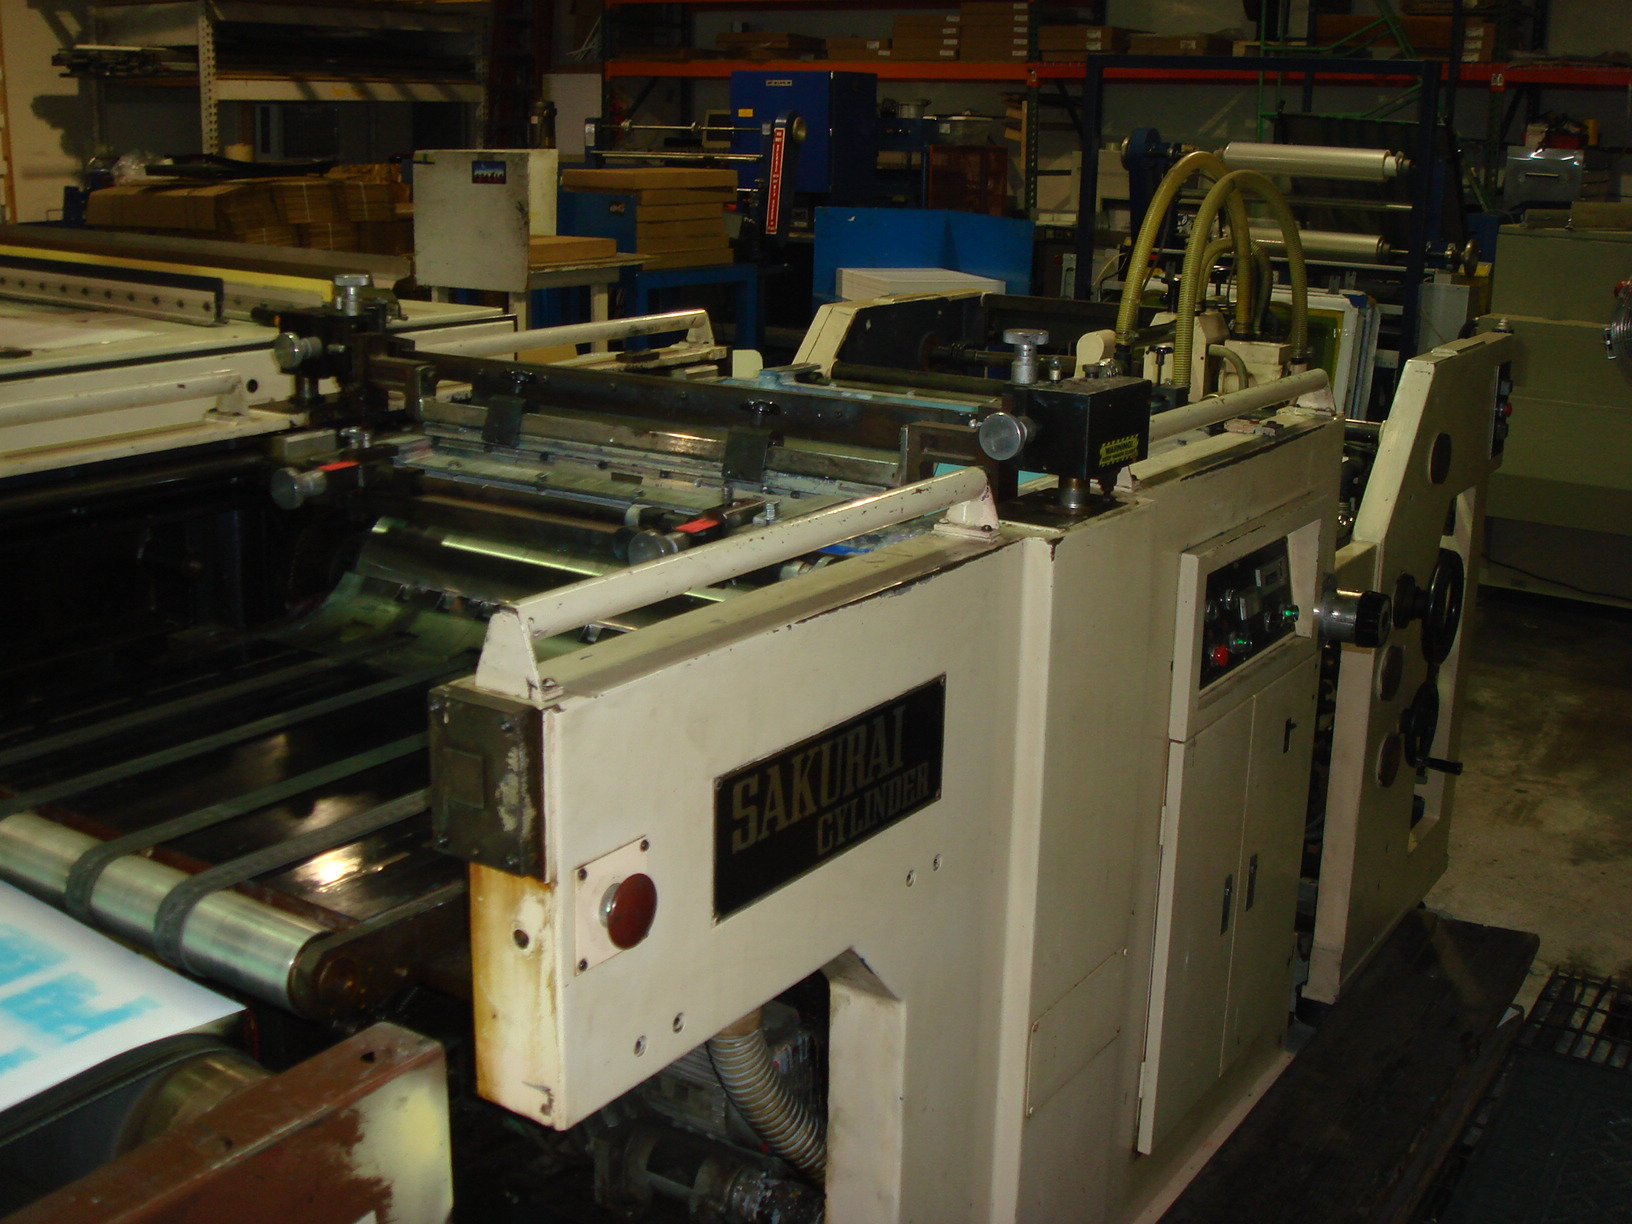 printing shop Equipment and business needs required to open a print shop business will depend on the type of printing and services you choose to offer small print shops typically.